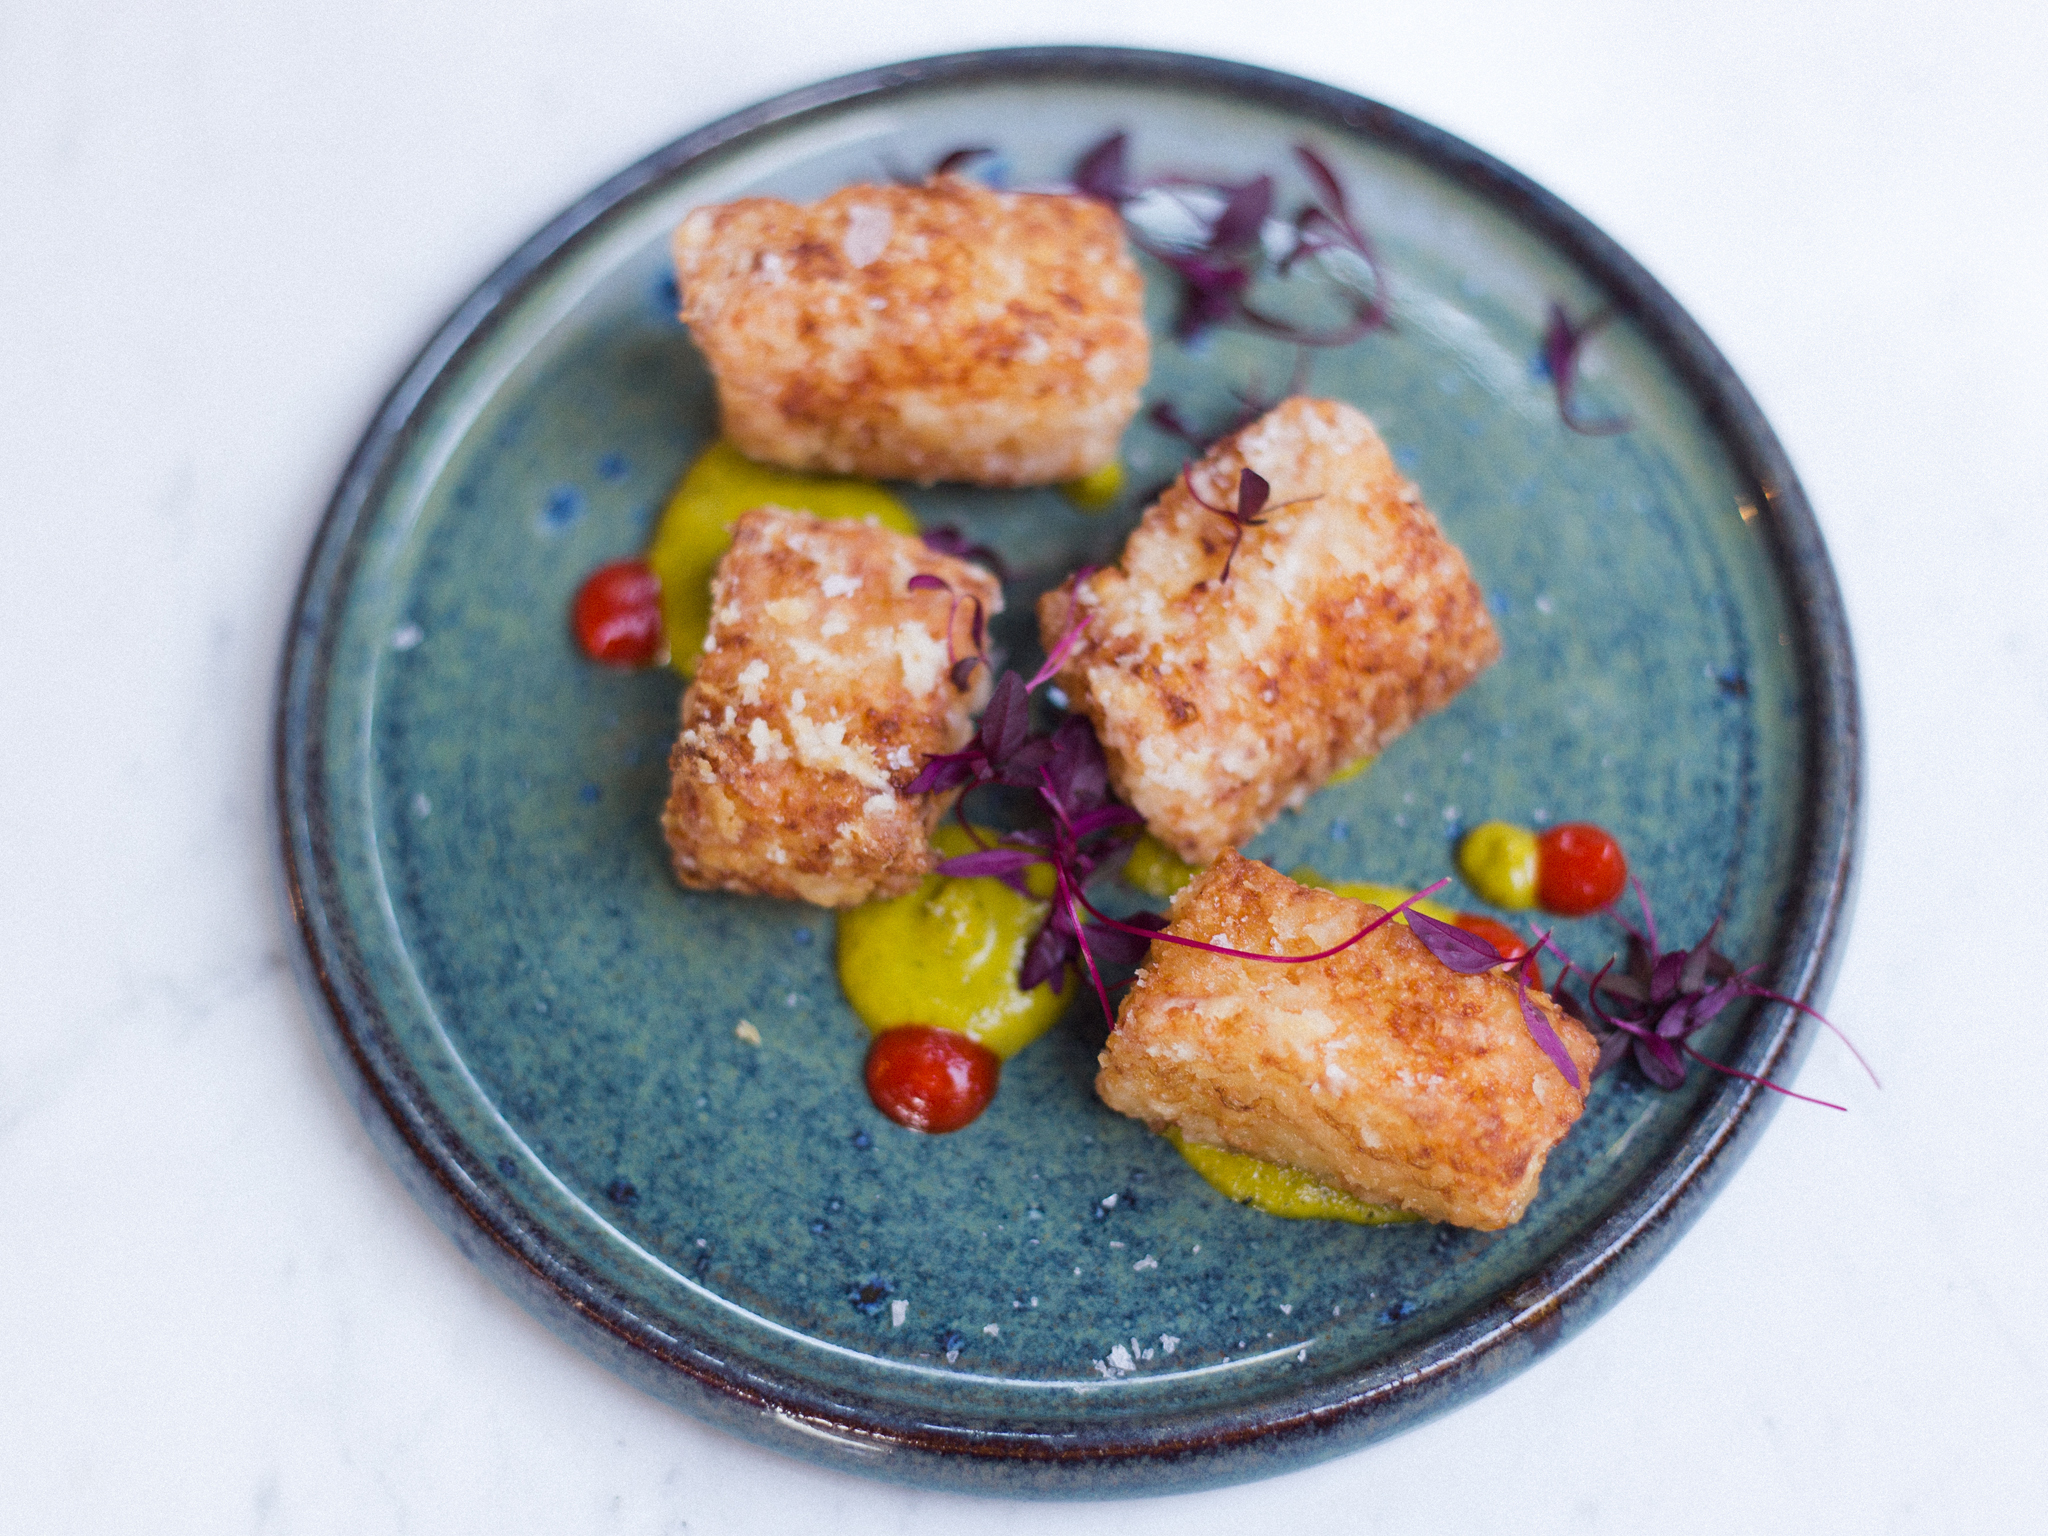 100 best dishes in london, chicama, tapioca marshmallow with ocapa sauce